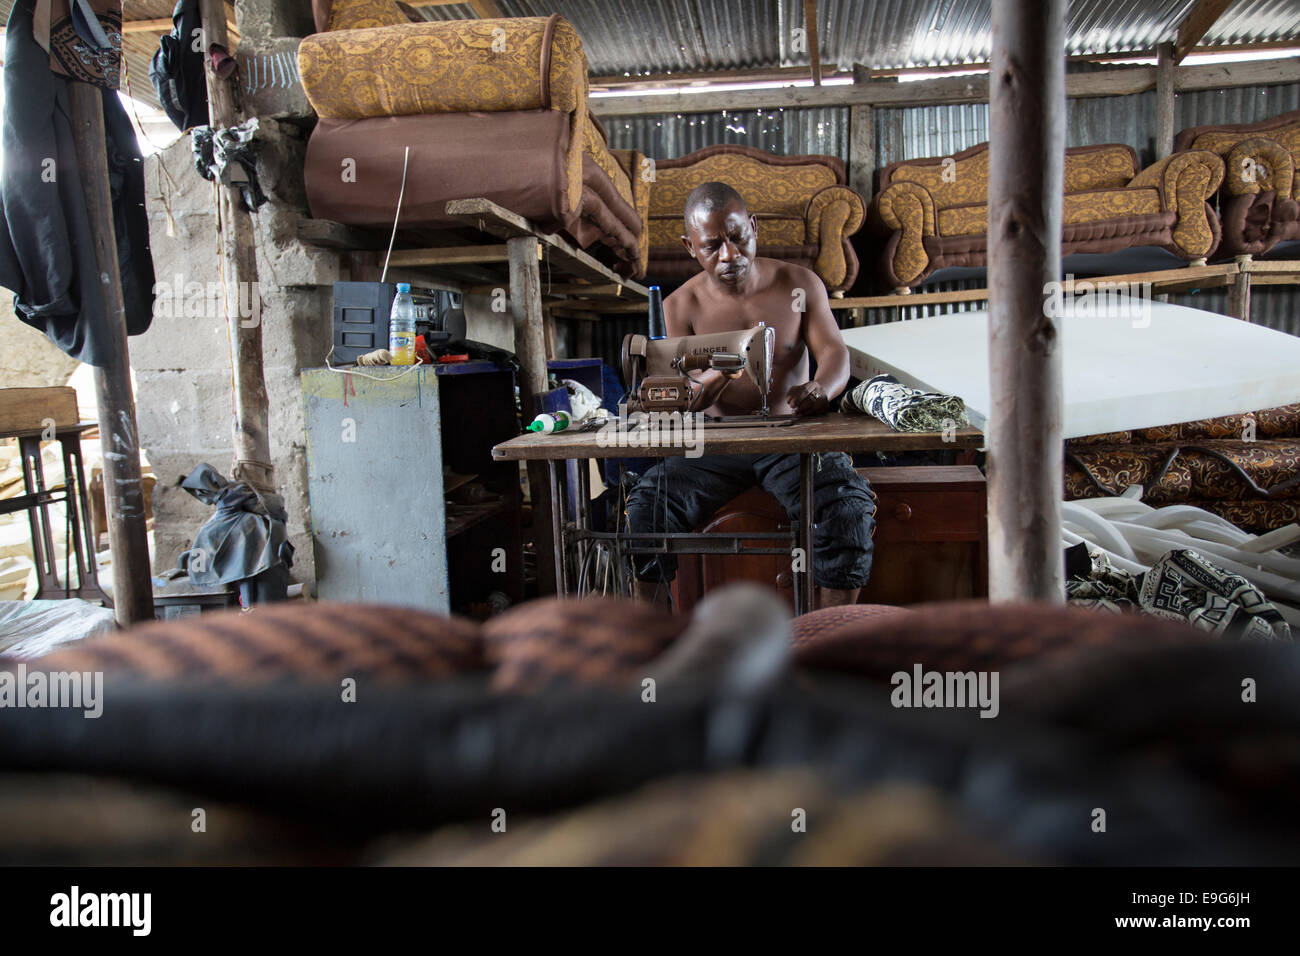 Upholsterer and furniture shop in Dar es Salaam, Tanzania, East Africa. - Stock Image